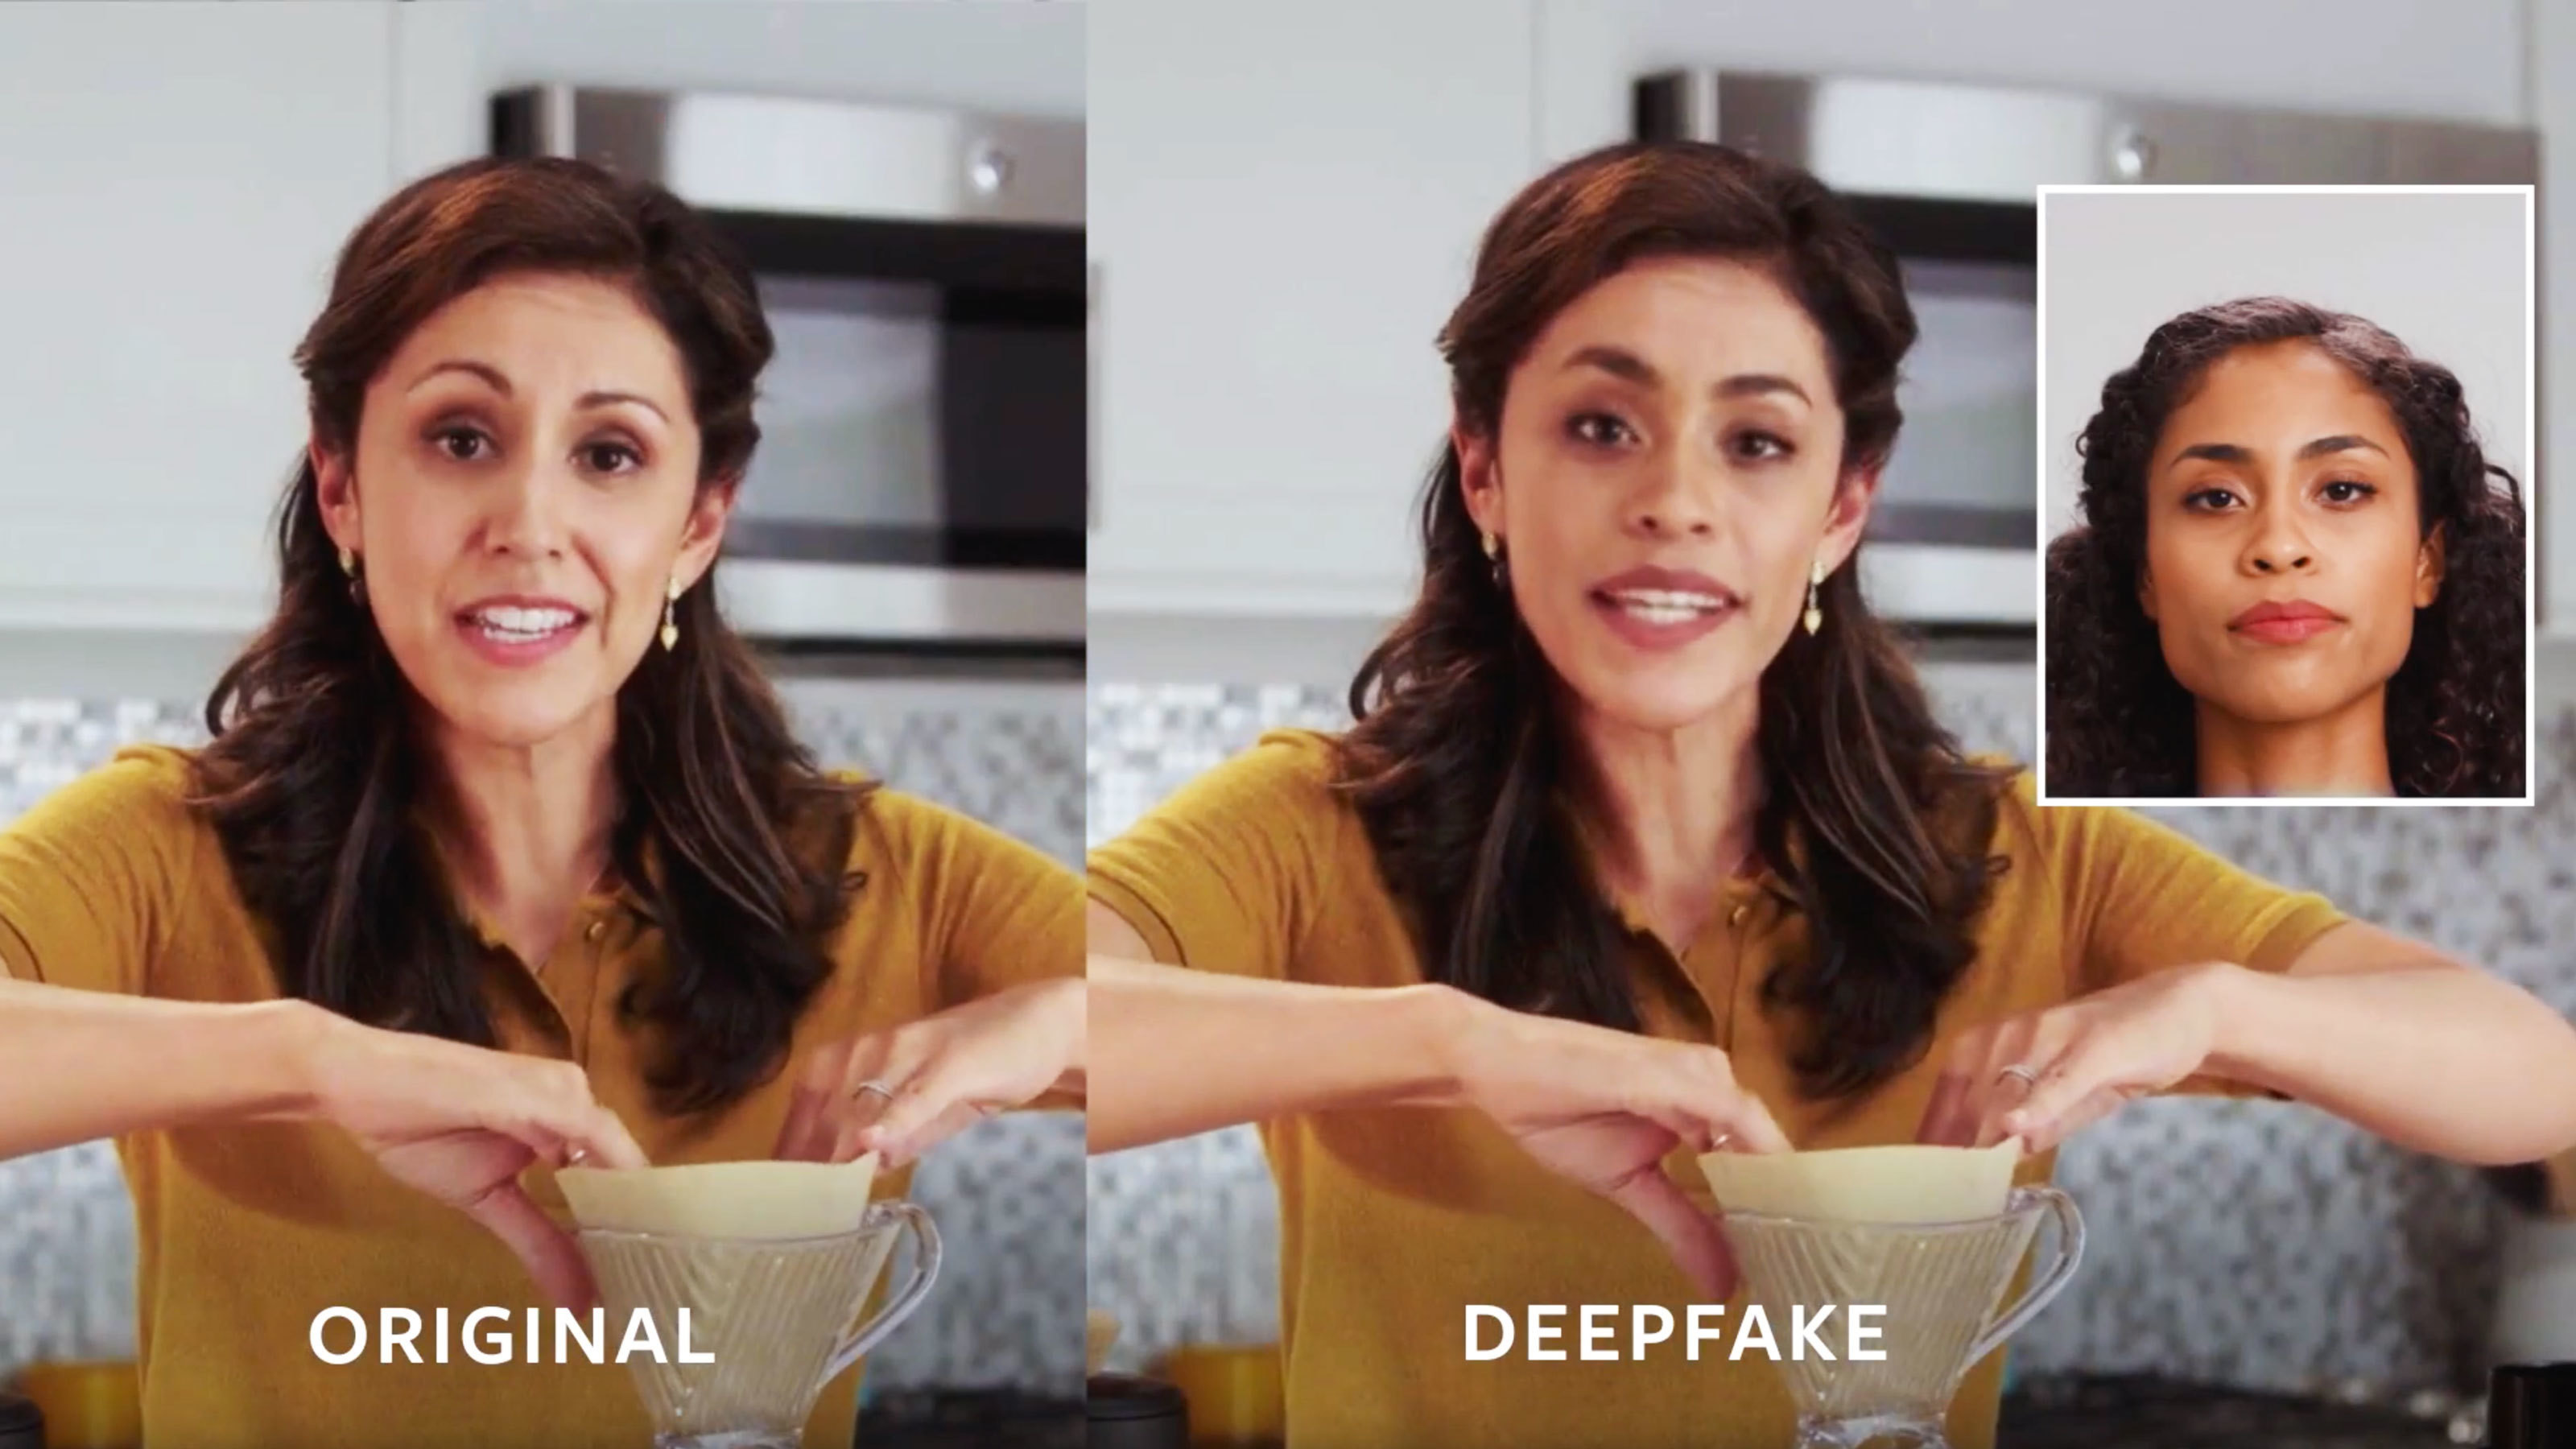 Example of deepfakes: original on the left, altered 'deep fake' on the right.